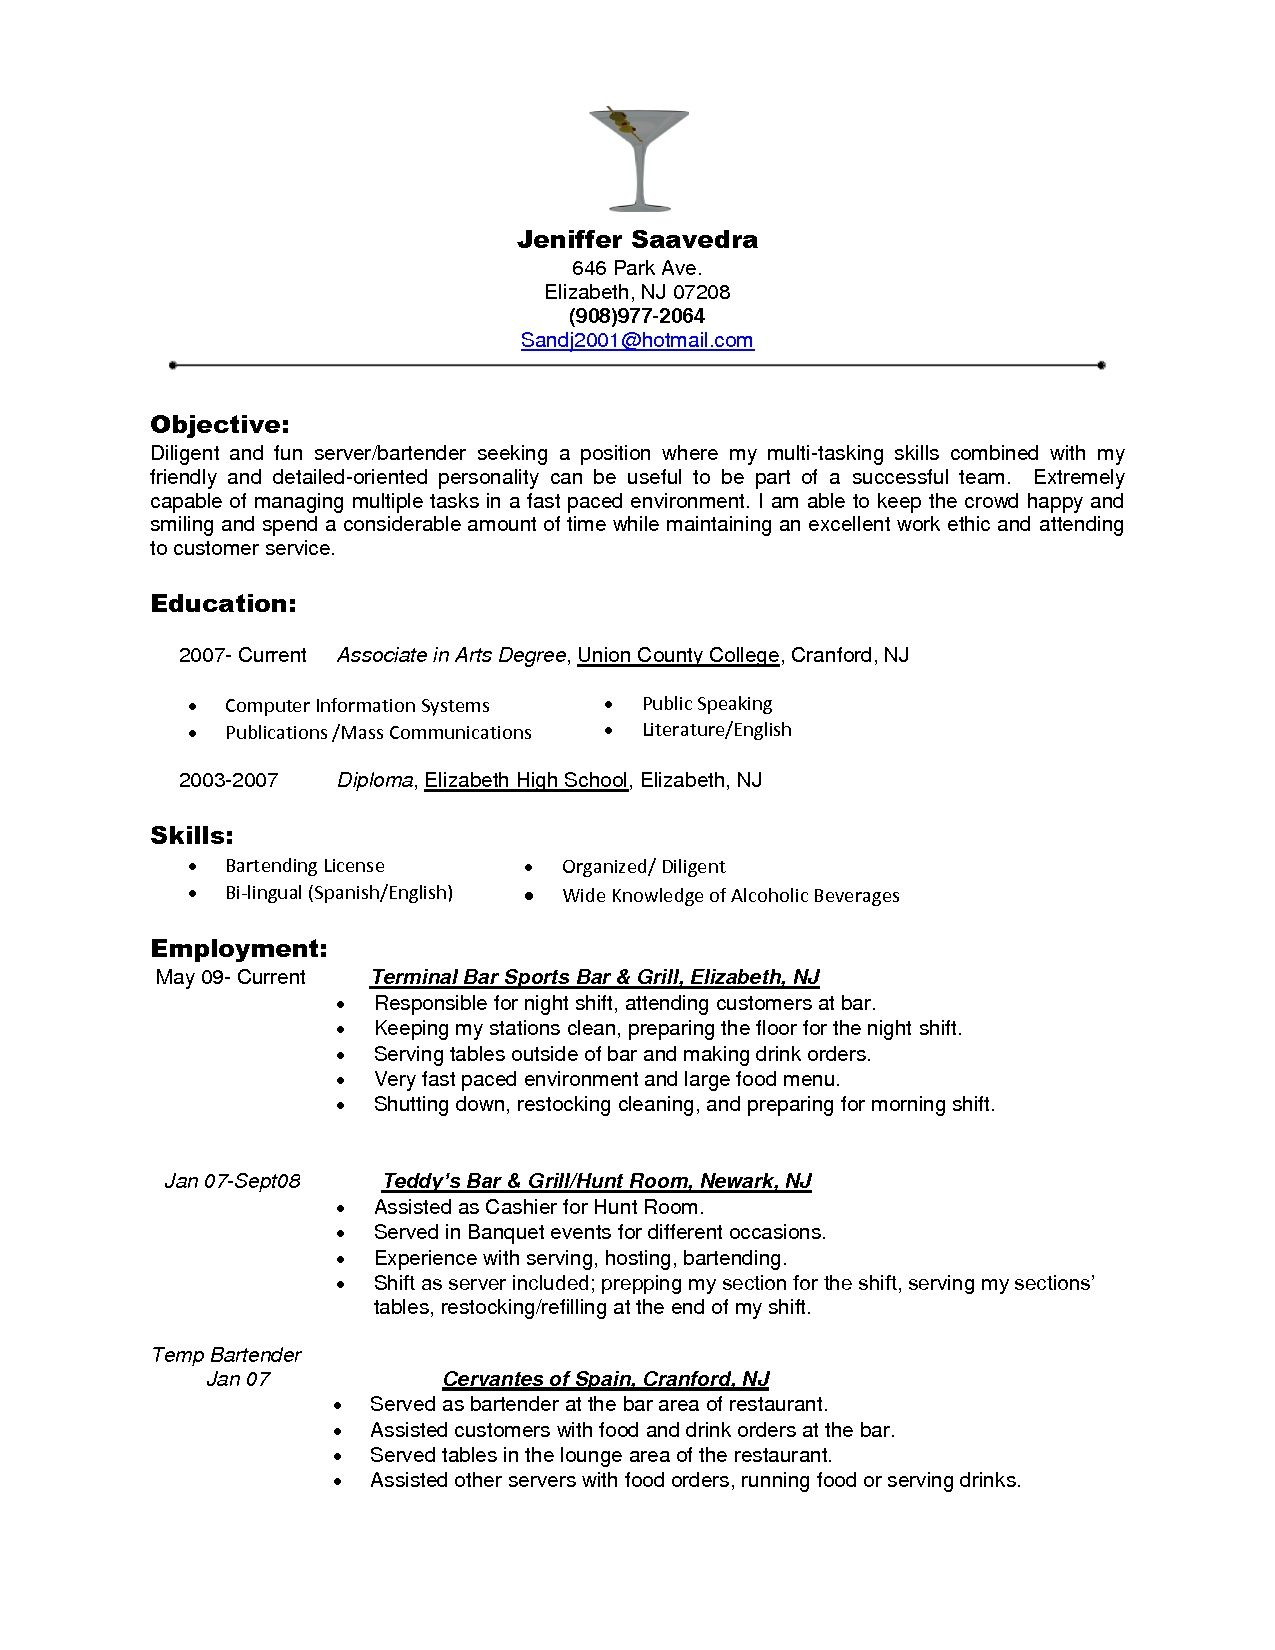 Bartender Objectives Resume - Bartender Objectives Resume will give ideas  and strategies to develop your own